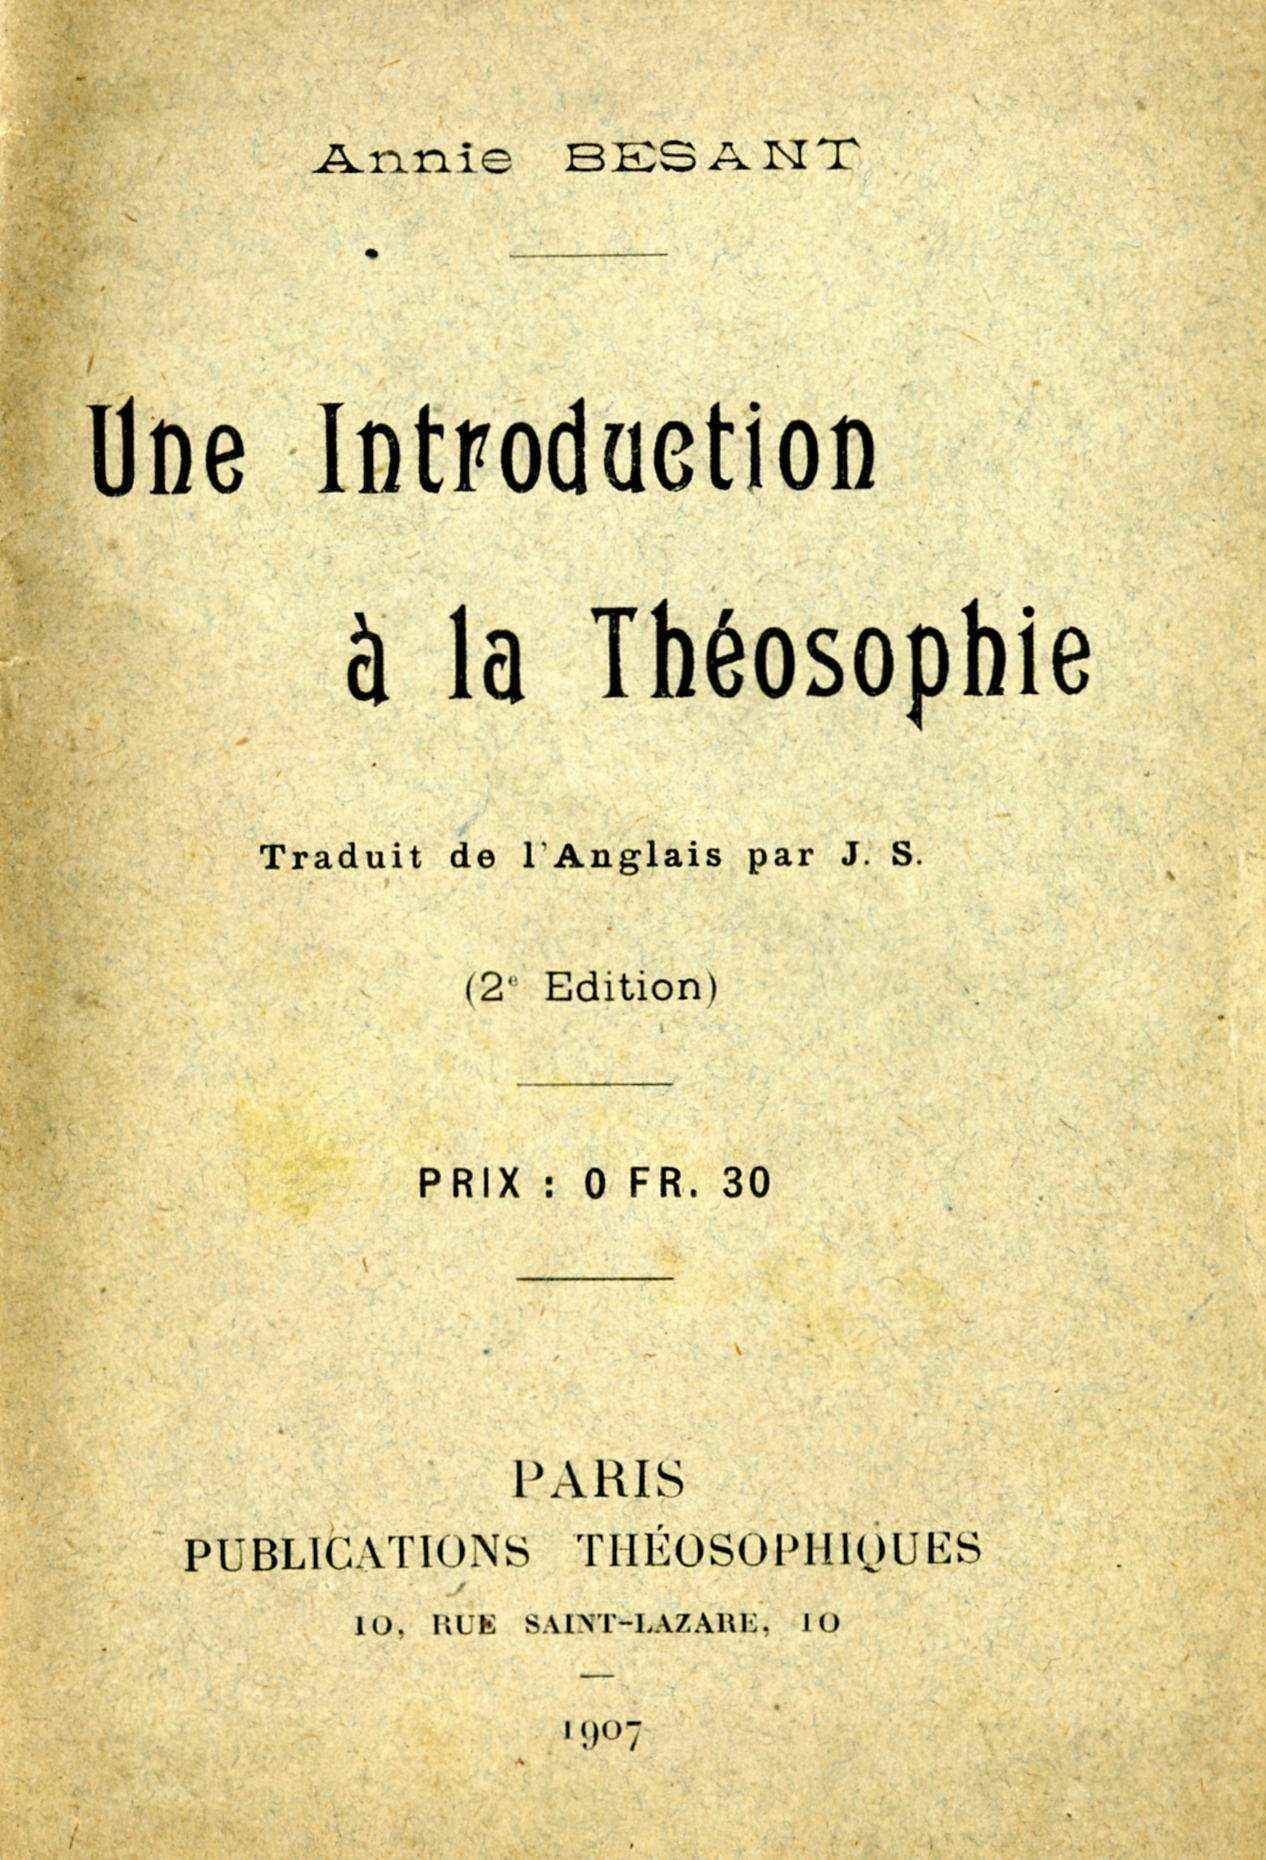 Annie Besant, Introduction           a la Théosophie, París, 1907.